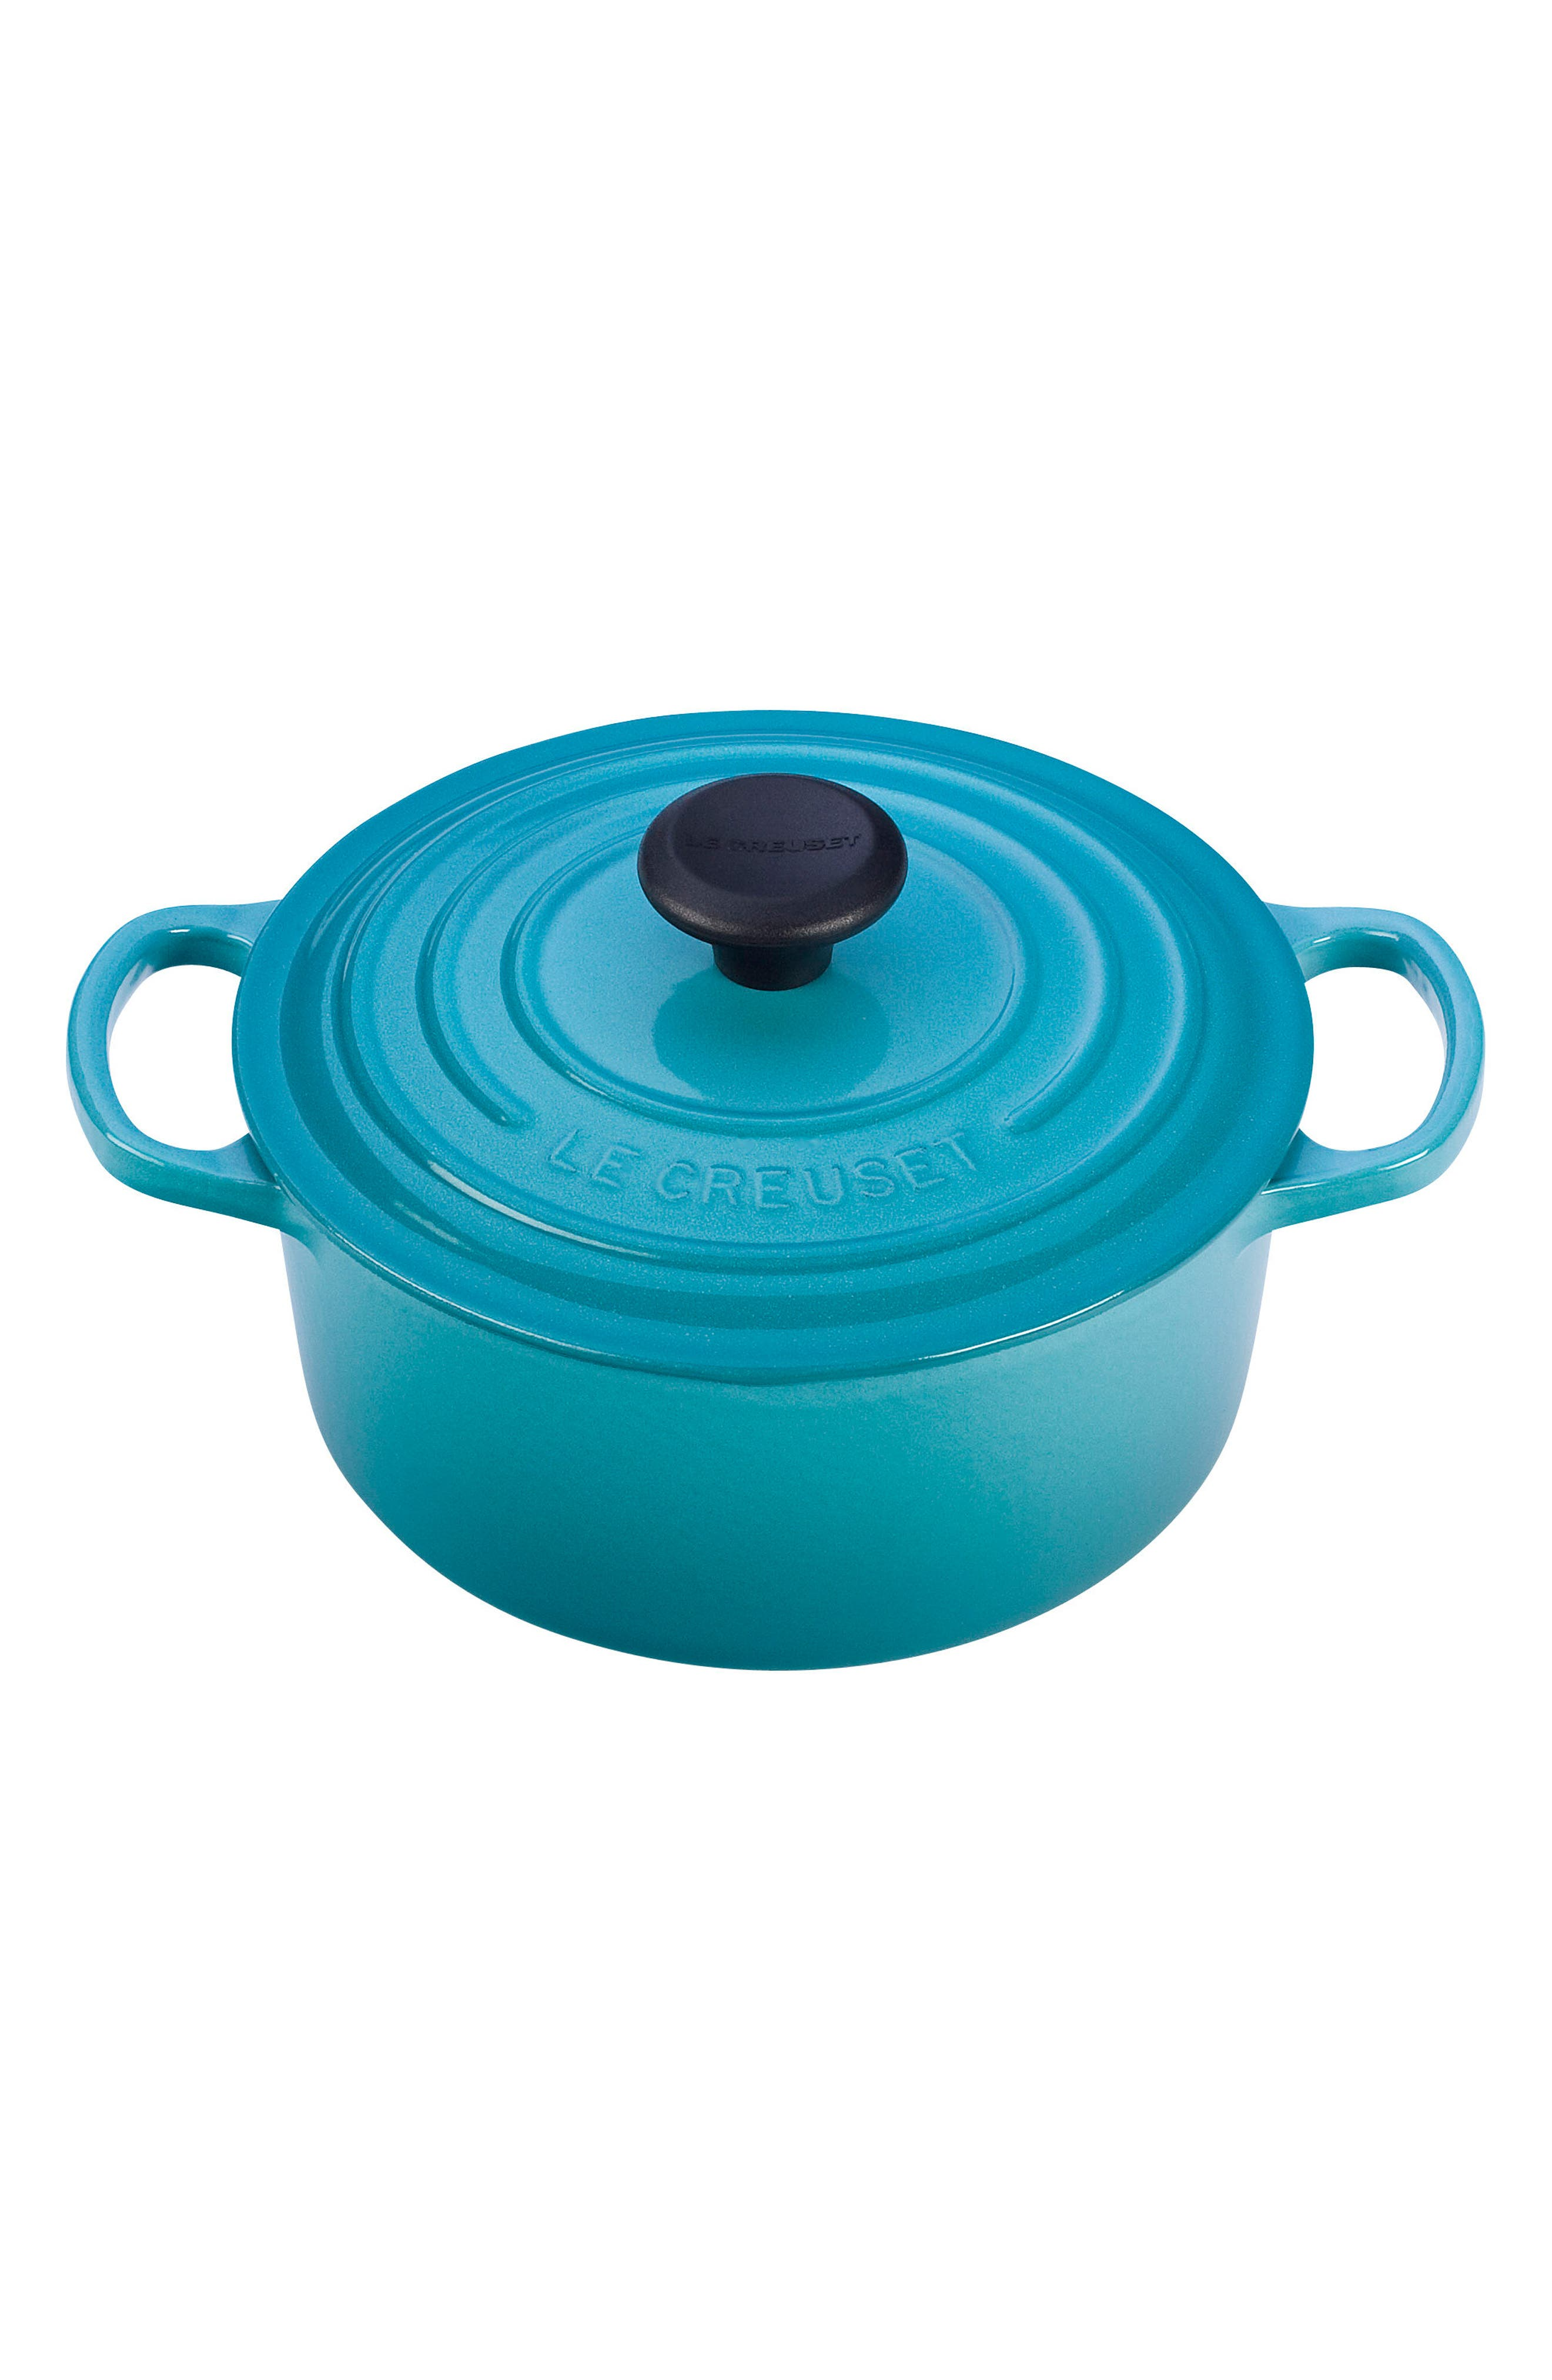 Le Creuset Signature 2-Quart Round Enamel Cast Iron French/Dutch Oven